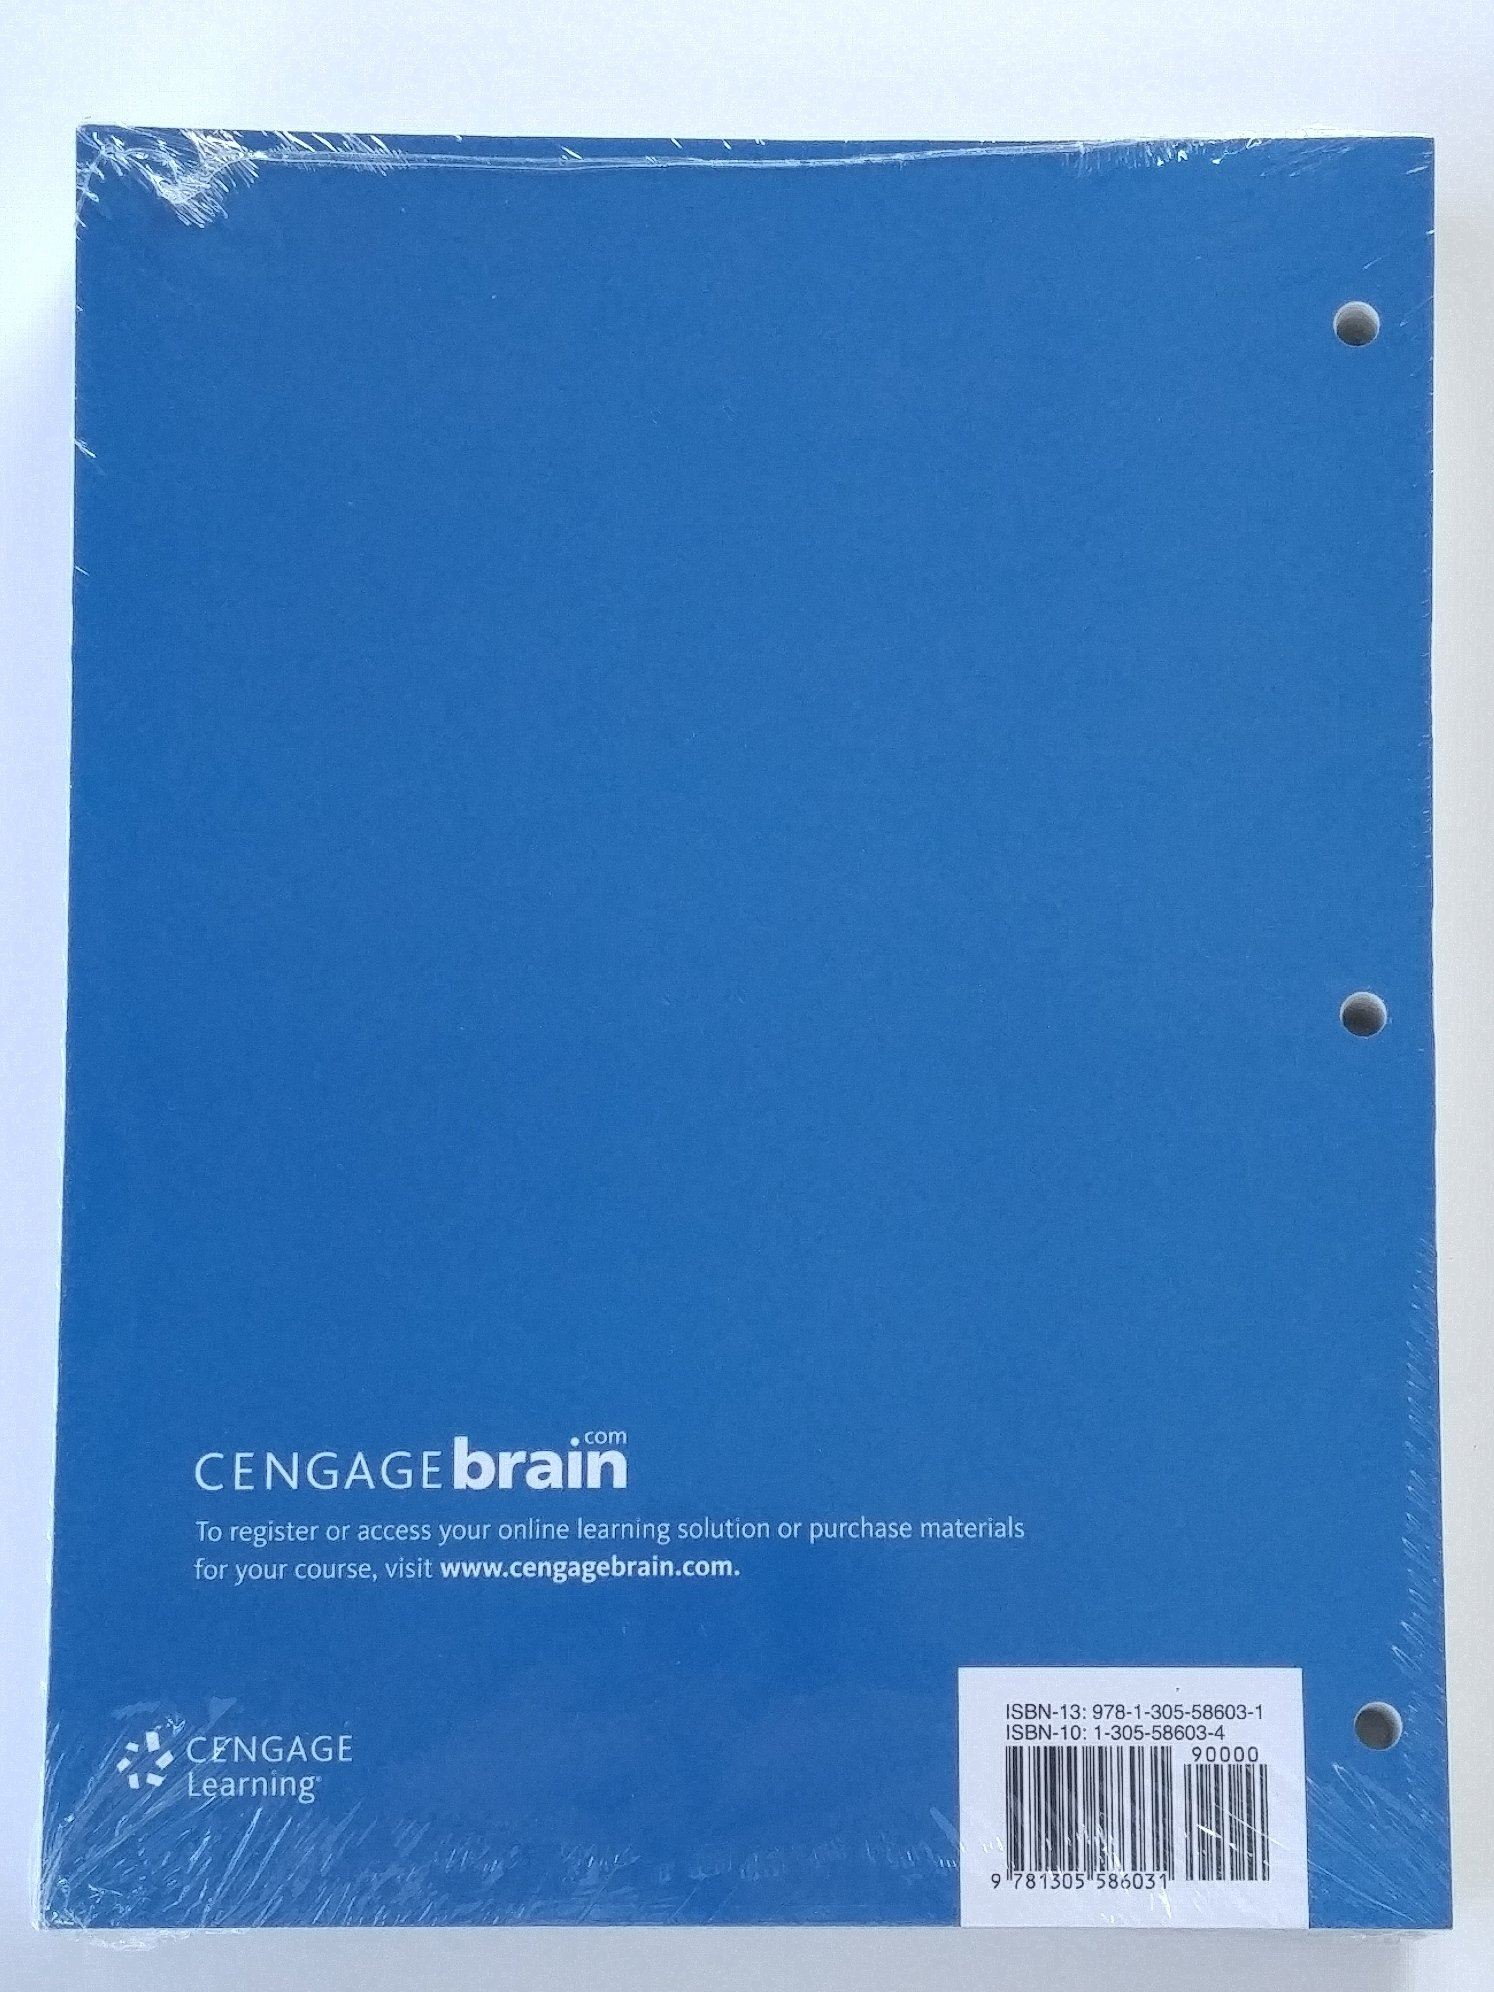 How to purchase an original phd dissertation on the cengage brain cengagebrain aplia coupon code cengagebrain coupon code fandeluxe Choice Image